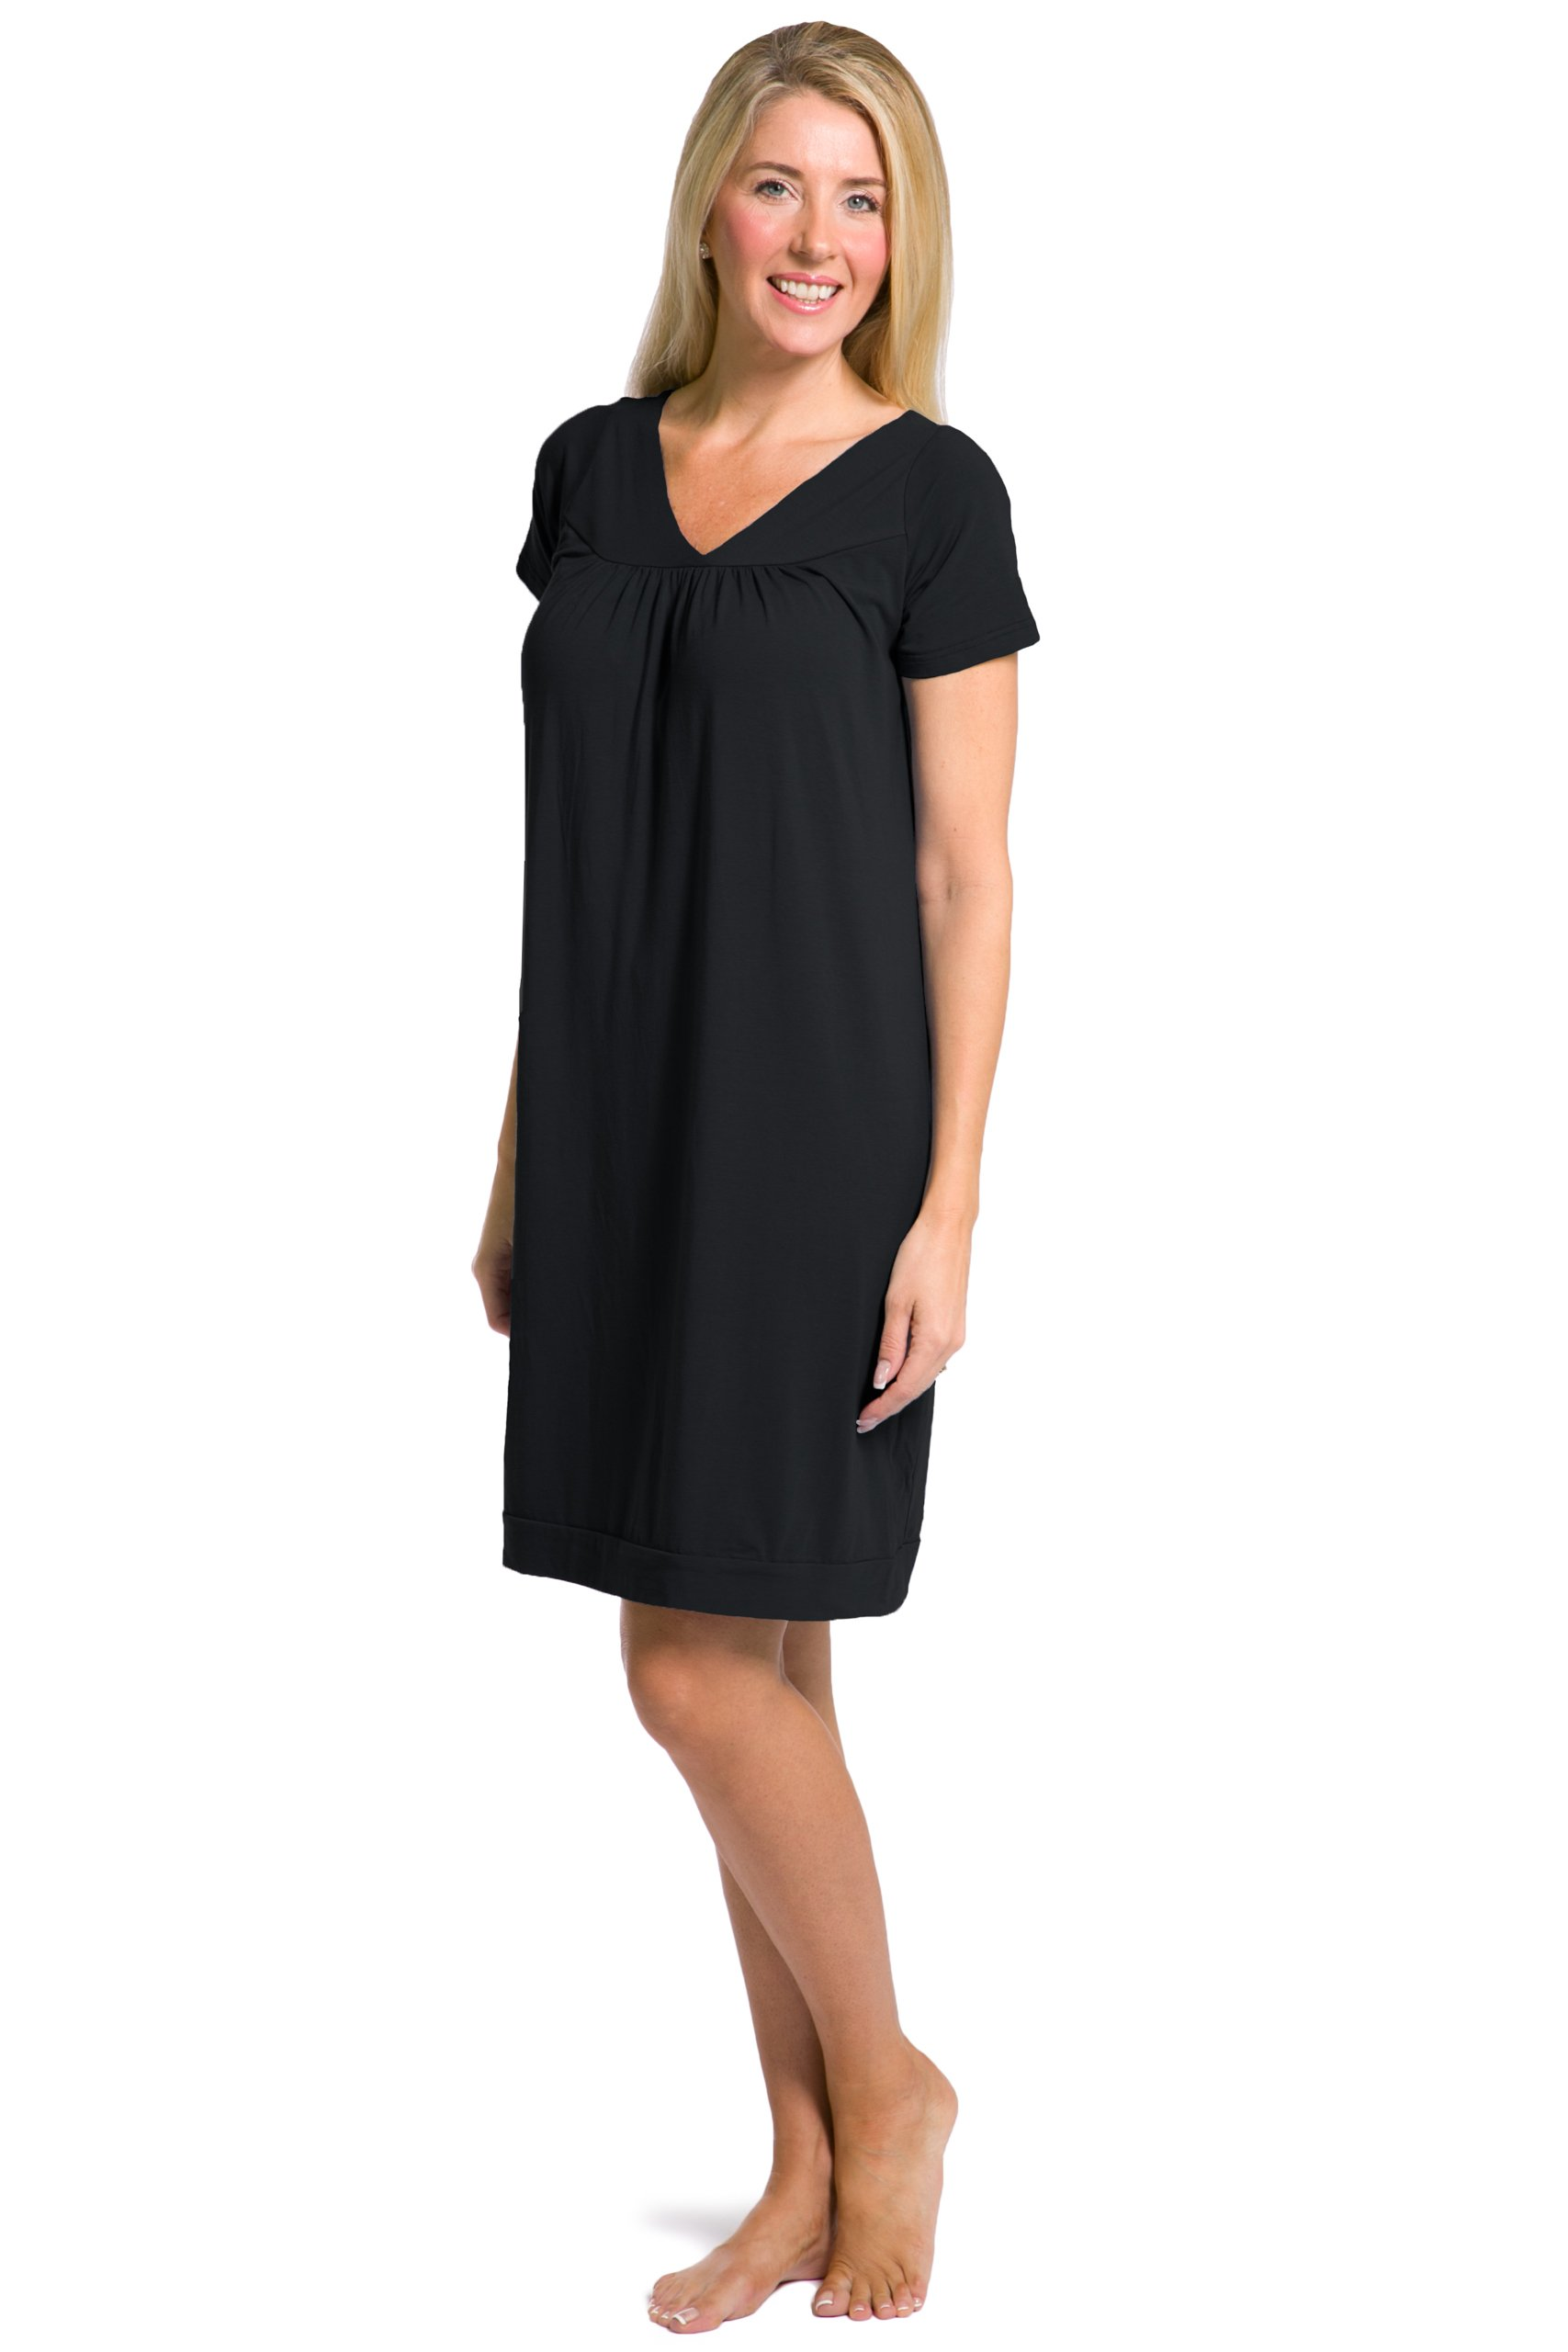 Fishers Finery Women's Tranquil Dreams Short Sleeve Nightgown Comfort Fit, Black, Large